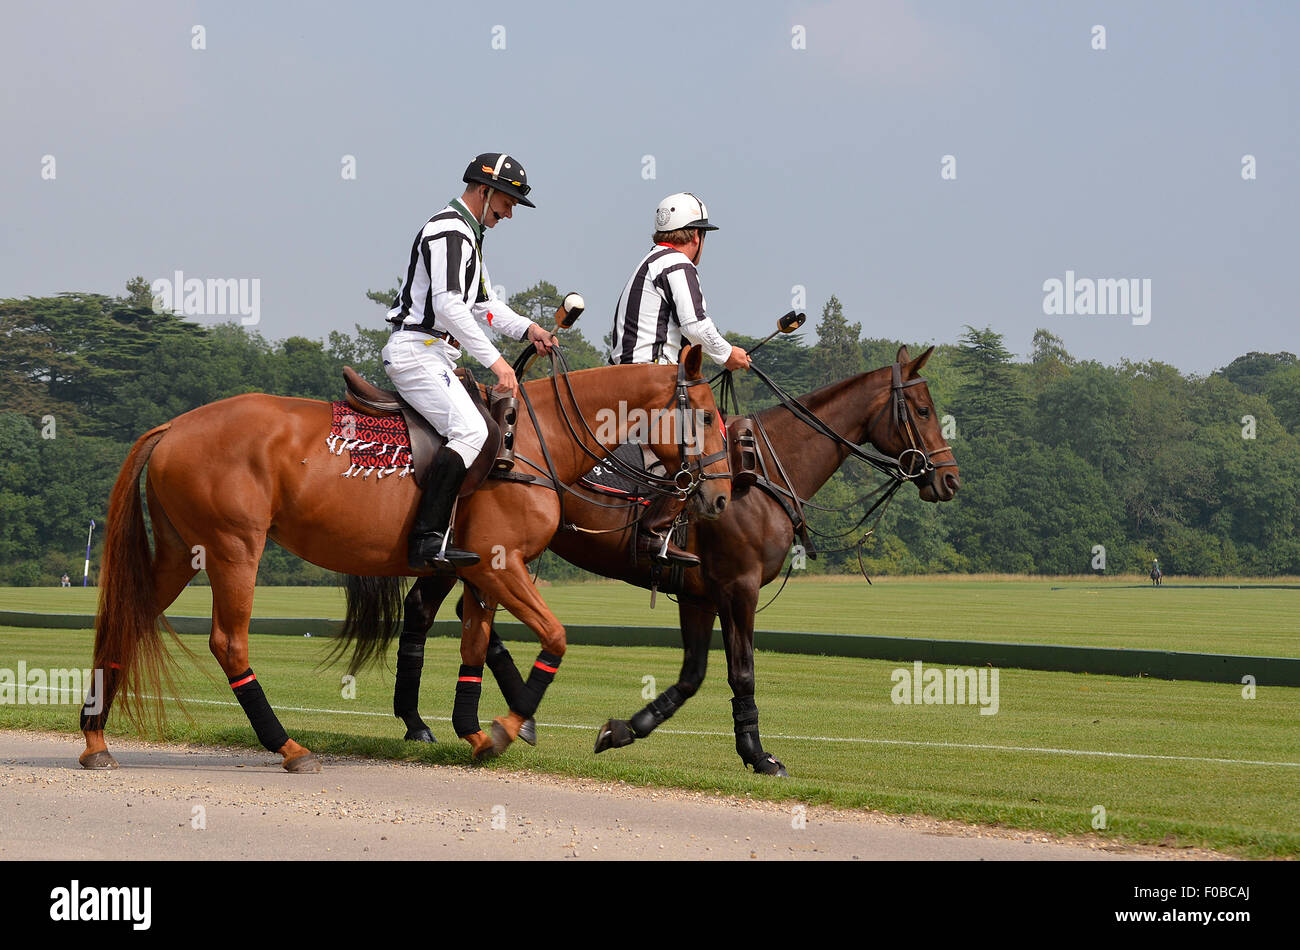 Two horse polo umpires on their horses at the Cirencester Park Polo Club in Cirencester, UK. - Stock Image